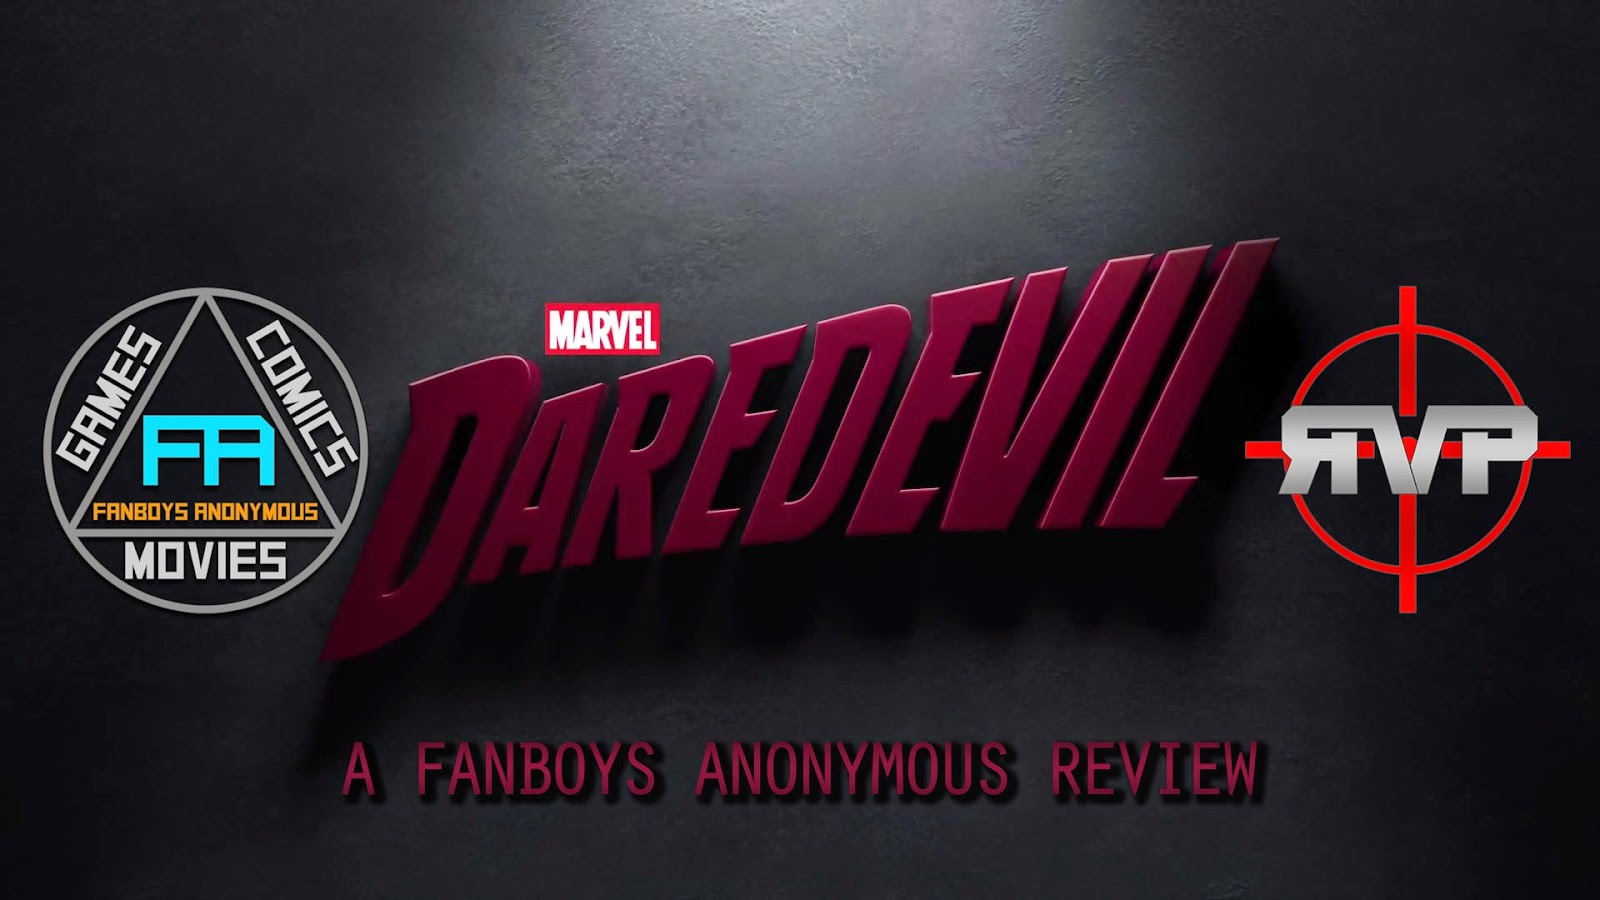 Netflix Marvel Daredevil poster review